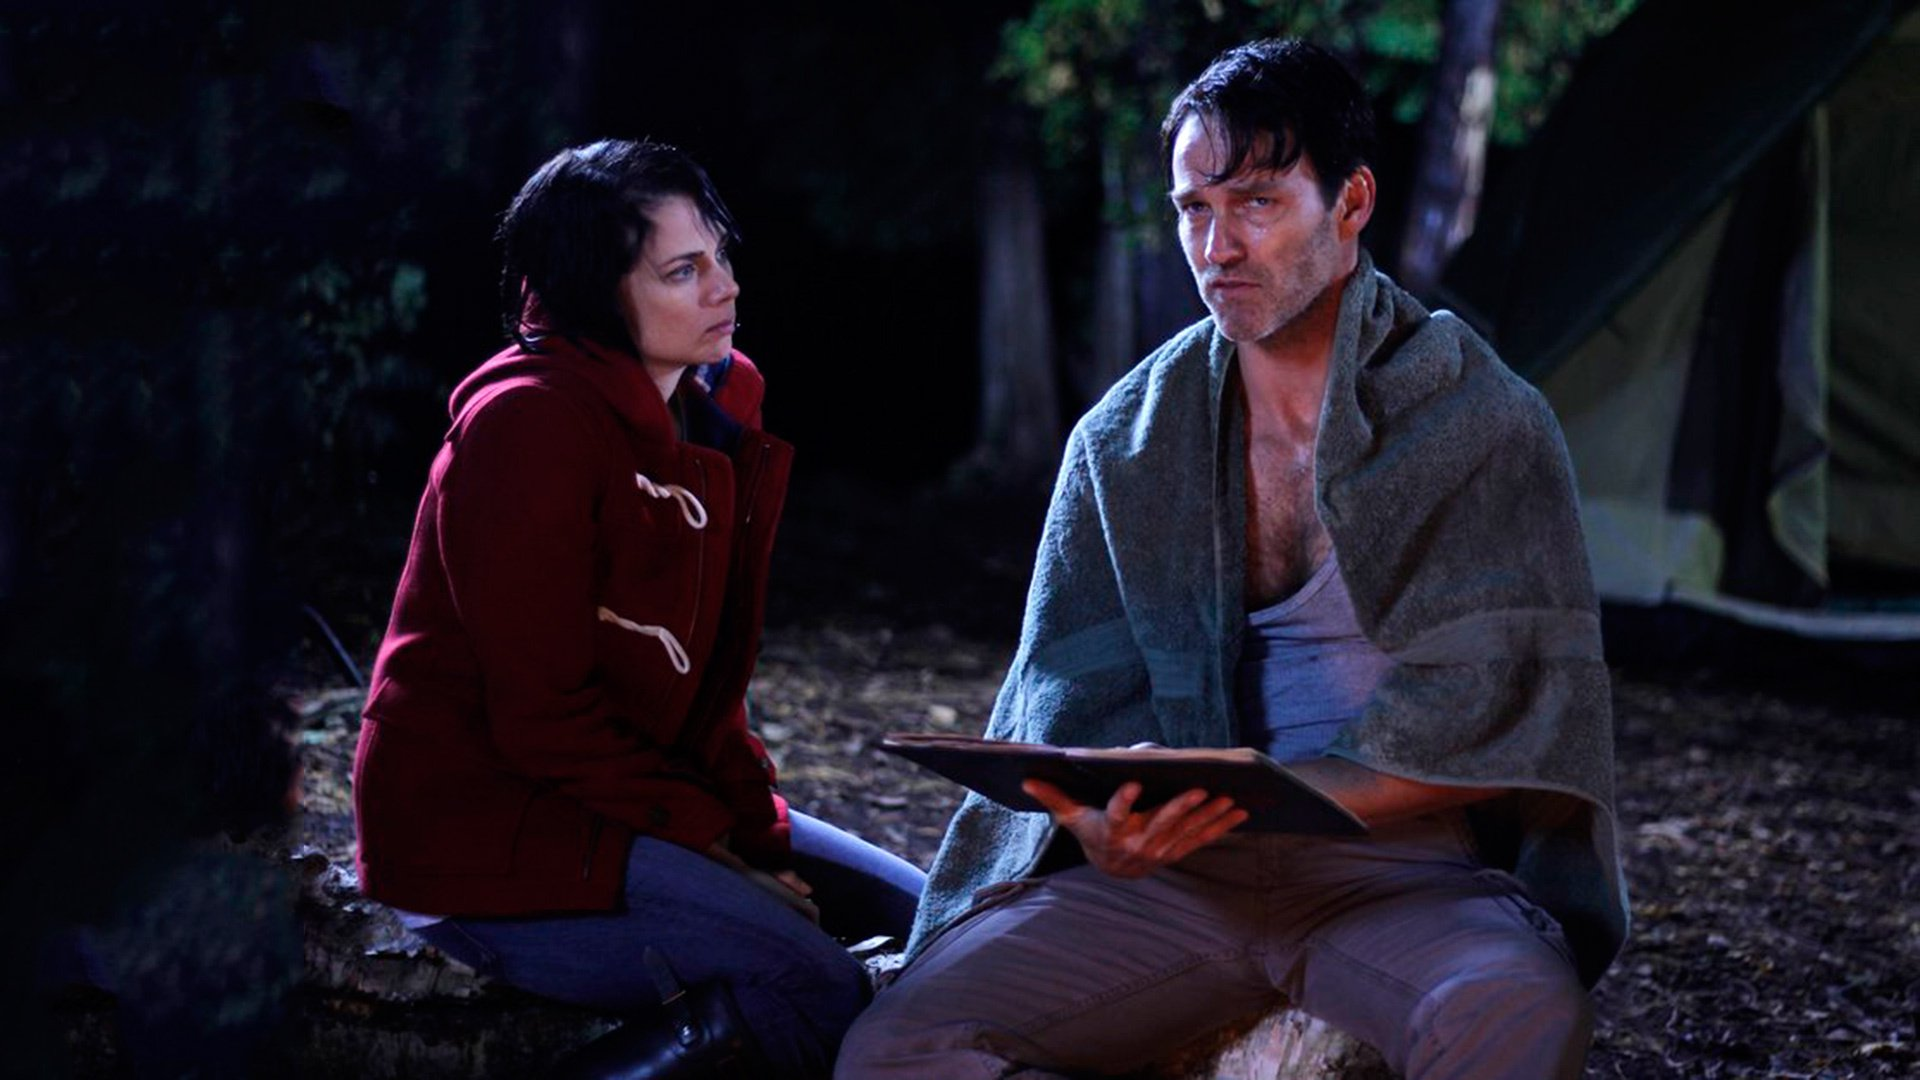 A paranoid and mentally unstable Stephen Moyer with wife Mia Kirshner in The Barrens (2012)